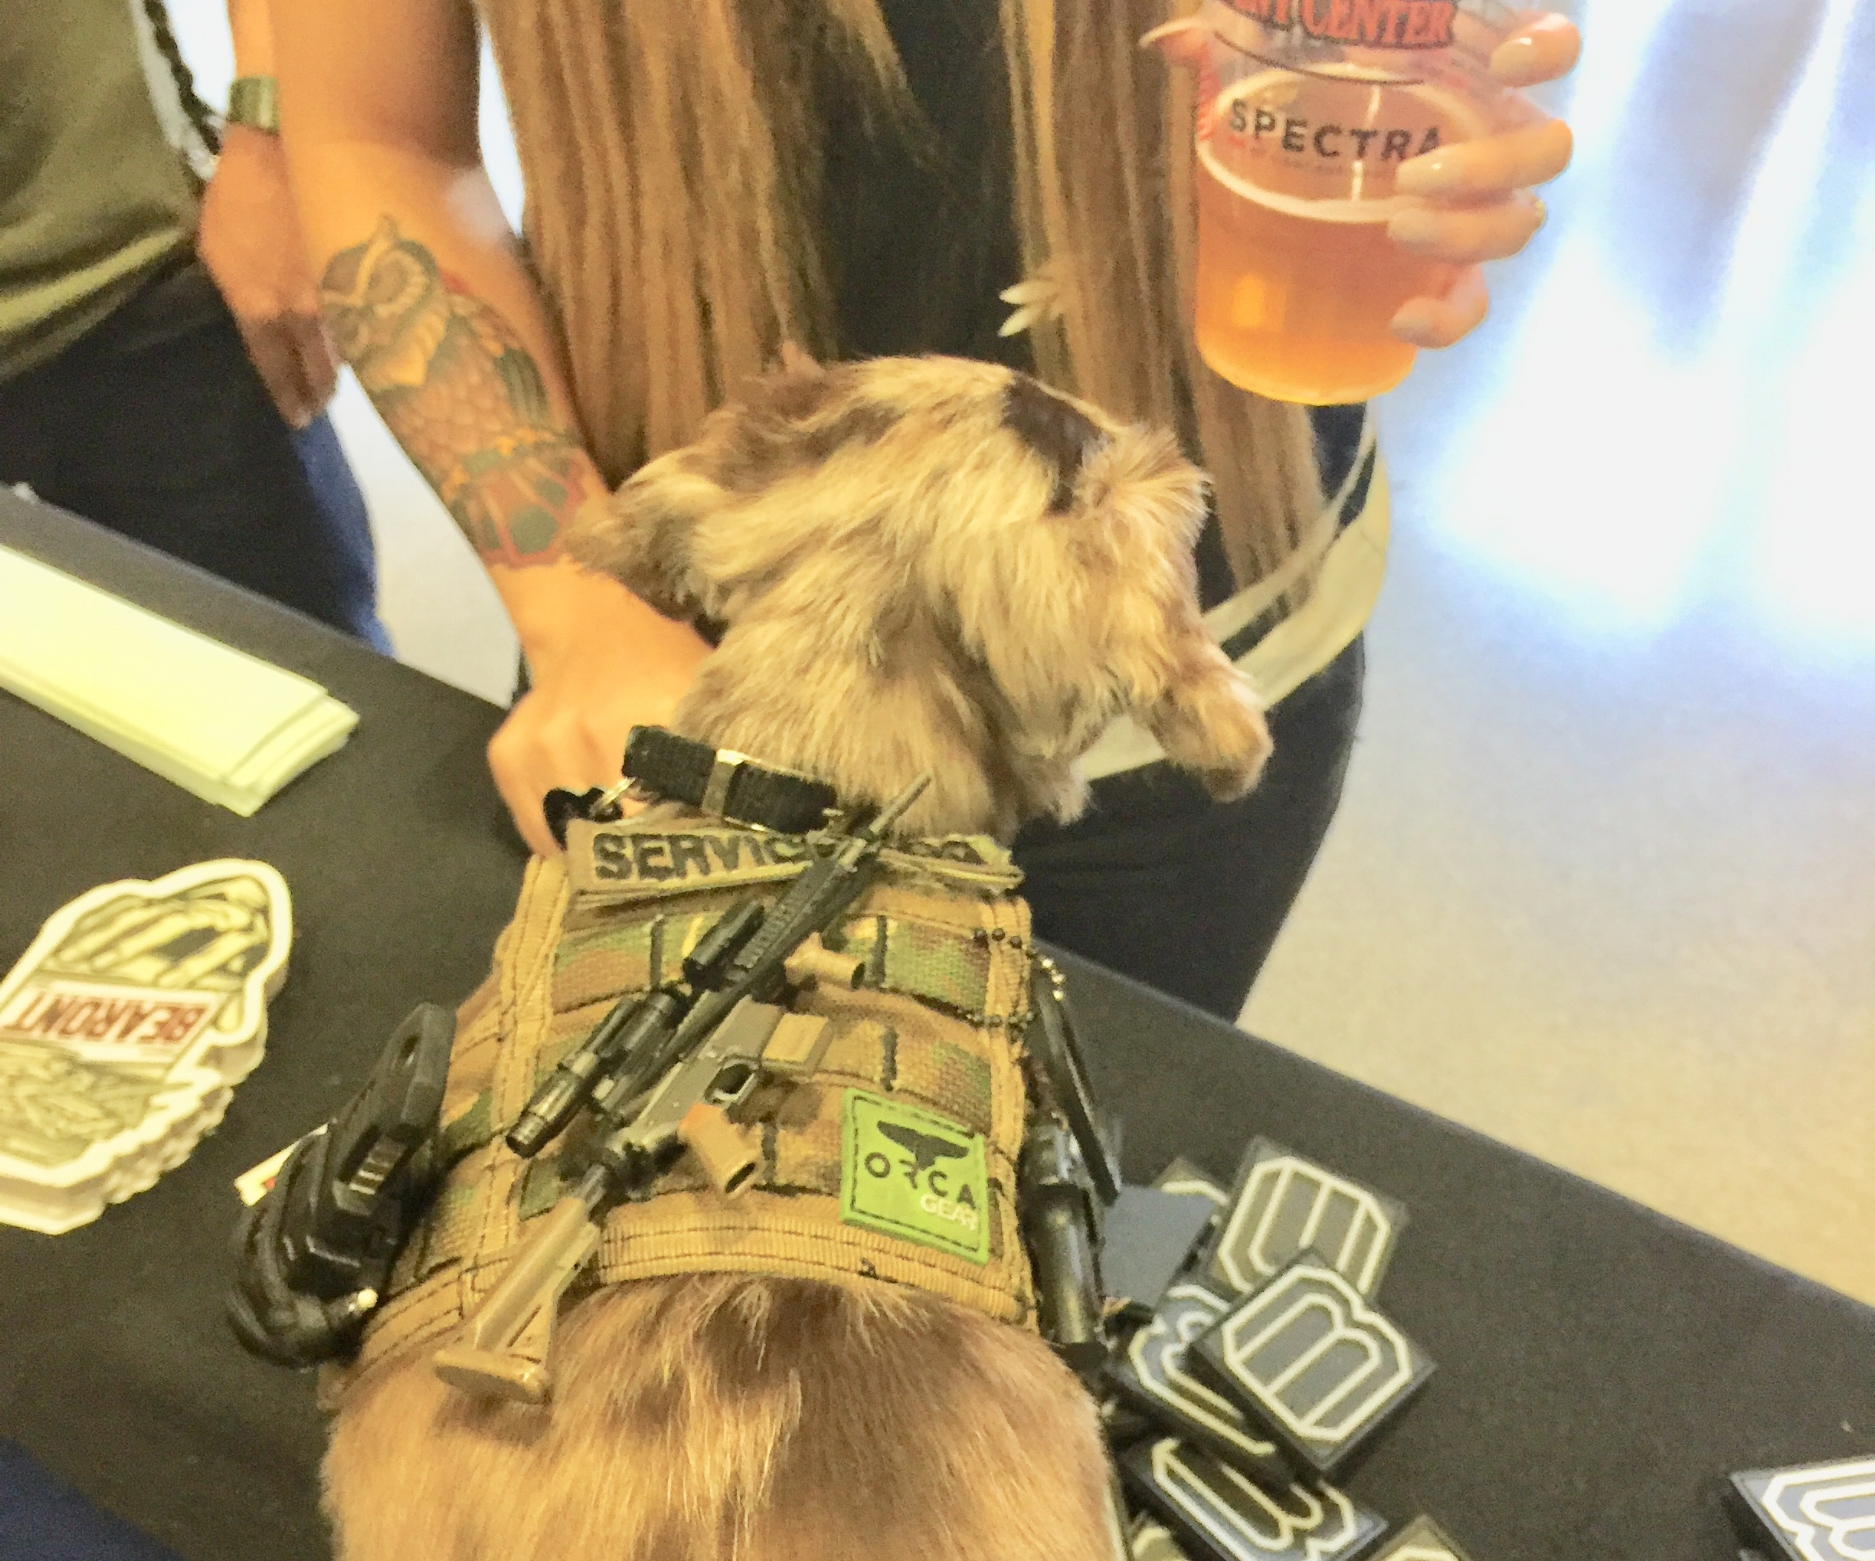 TAZ   Tactical Tax came by the booth today and put paws all over our product but we were stoked to let him run around. He was ready to rock incase something went down.